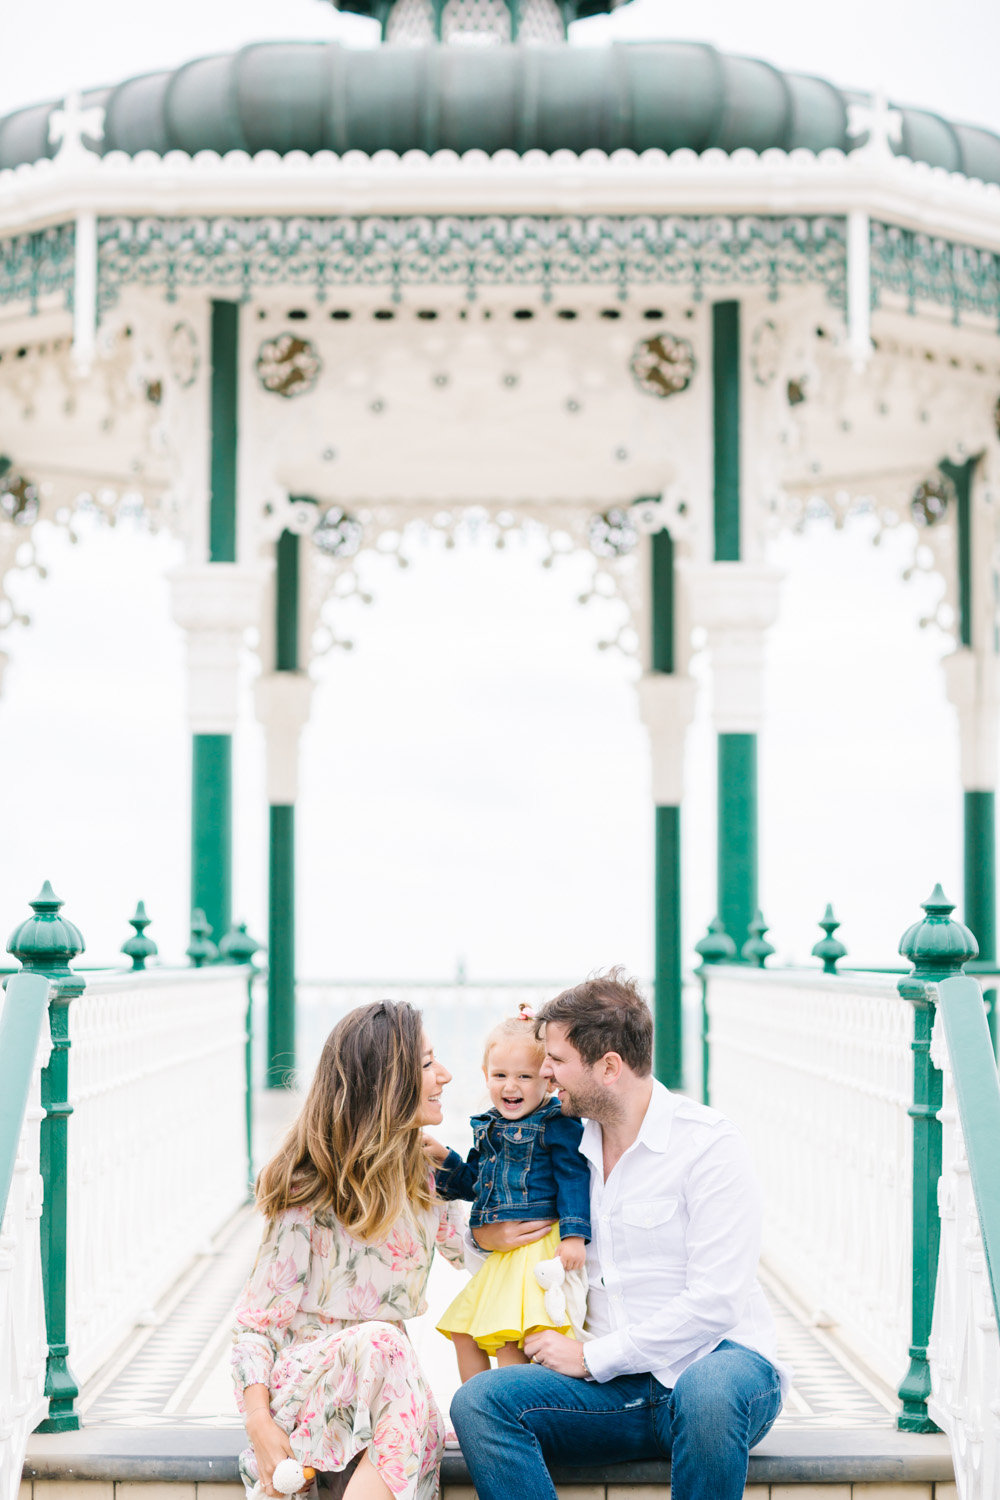 brighton_familysession-7.jpg